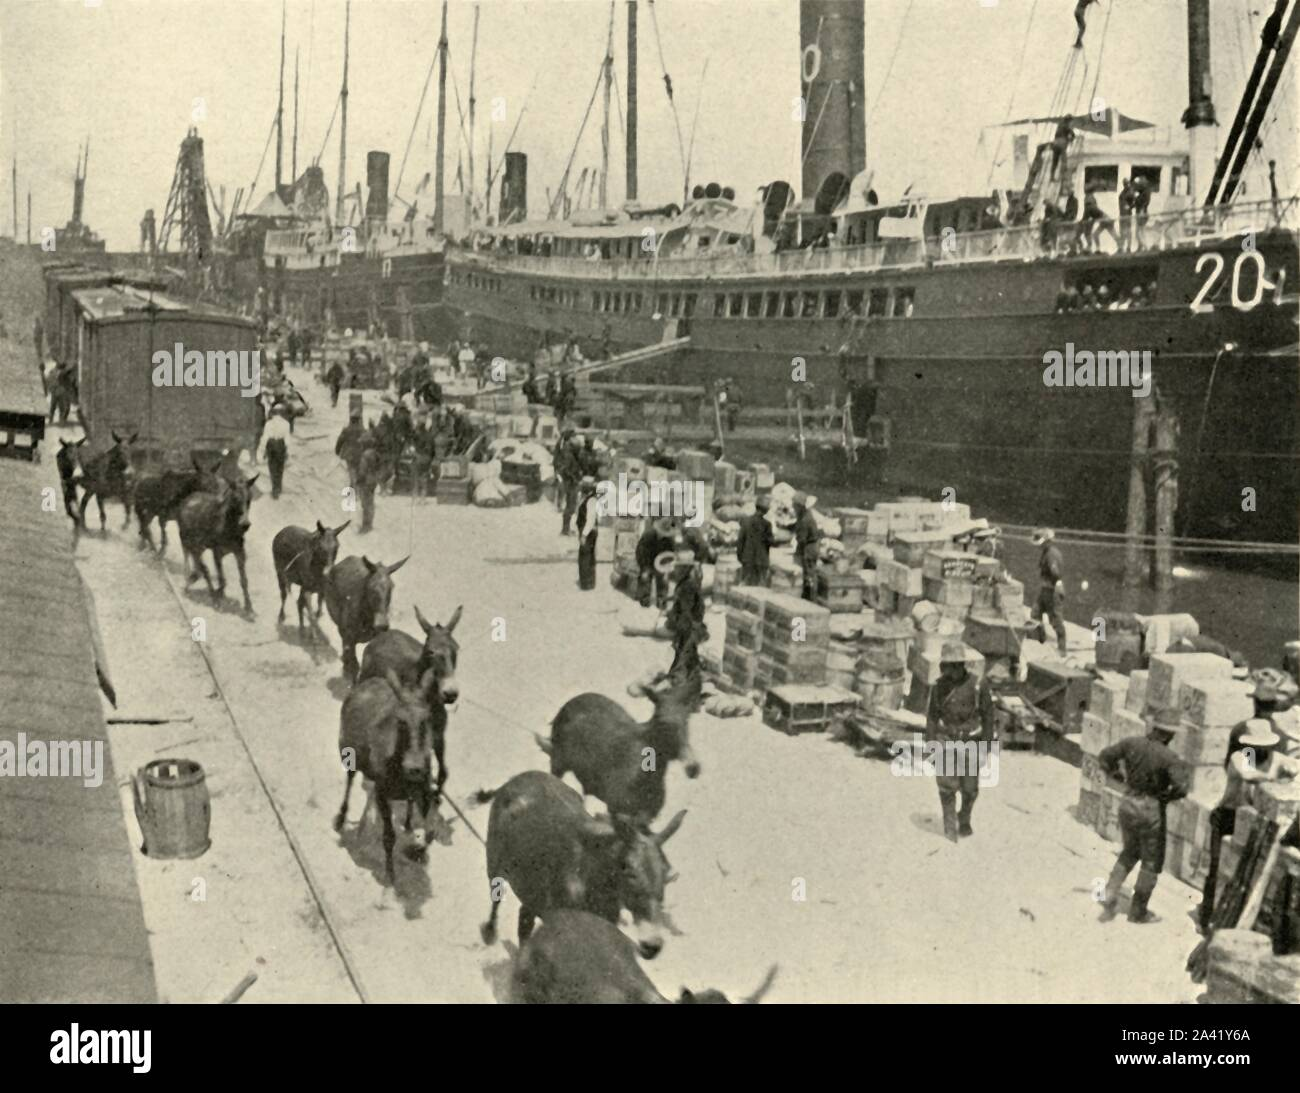 """Troopships at Port Tampa, Florida, USA, Spanish-American War, 10 June 1898, (1899). Ships preparing to leave for Cuba. 'The mules and horses coming up the track had just been liberated from the various ships'. From """"The Little I saw of Cuba"""" by Burr McIntosh, with photographs by the author. (In 1898, American actor and journalist William Burr McIntosh went to Cuba to cover the Spanish-American War for """"Leslie's Weekly"""" as a reporter and photographer). [F. Tennyson Neely, London & New York, 1899] Stock Photo"""